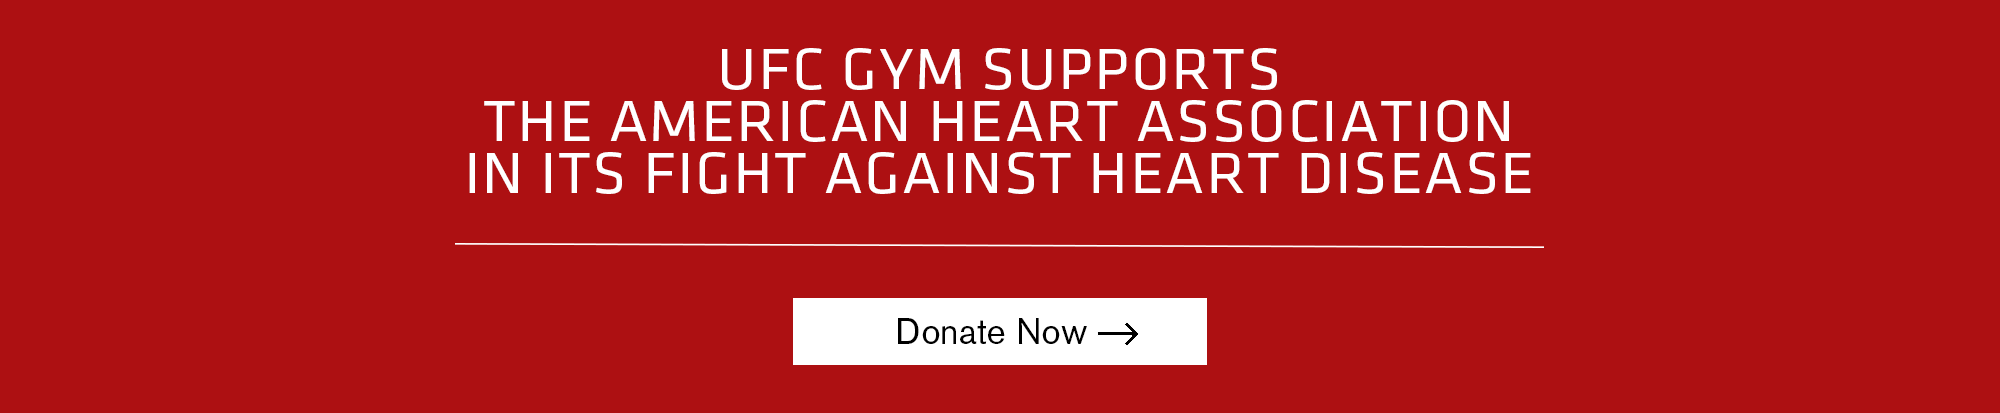 Donate to the American Heart Association